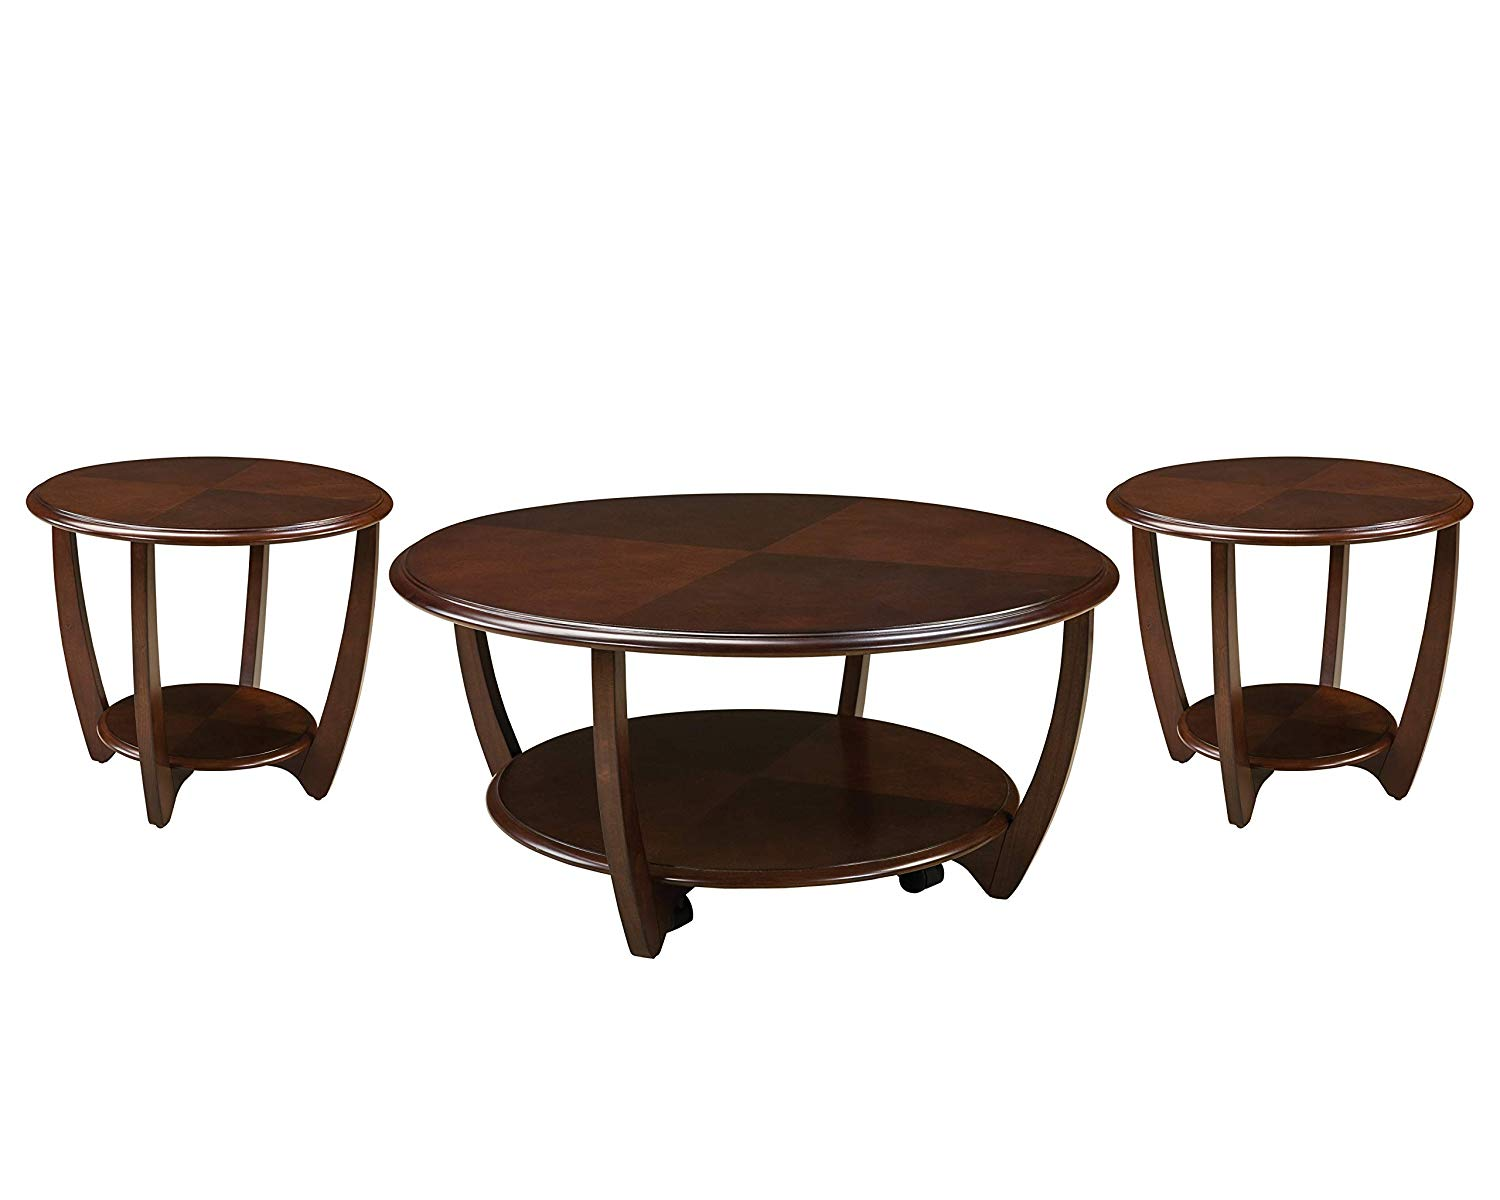 standard furniture seattle pack accent tables dark cherry wood table kitchen dining pottery barn chairs rattan outdoor clearance small vintage console modern wooden coffee designs